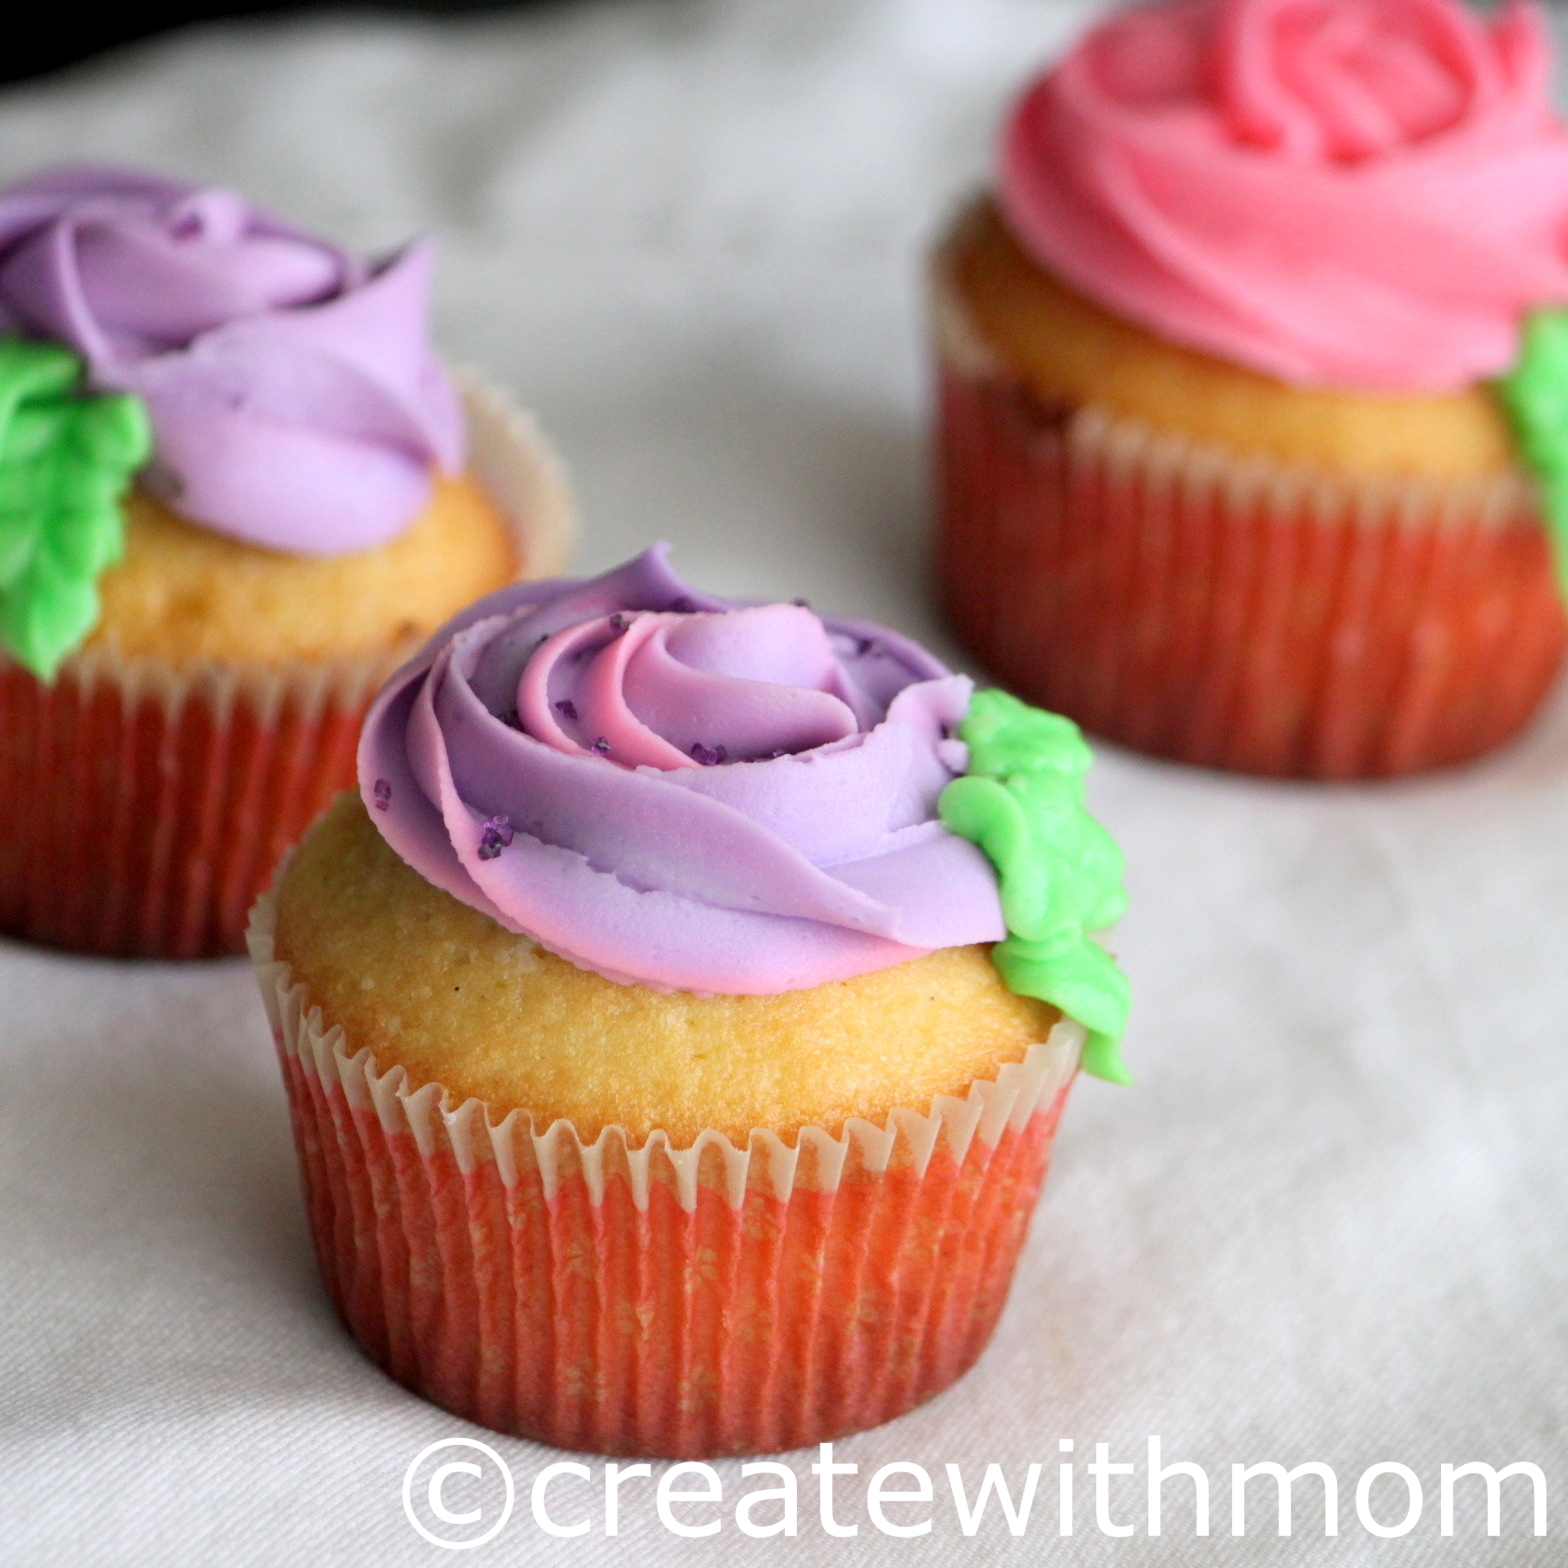 Create With Mom: Cupcakes For A Birthday